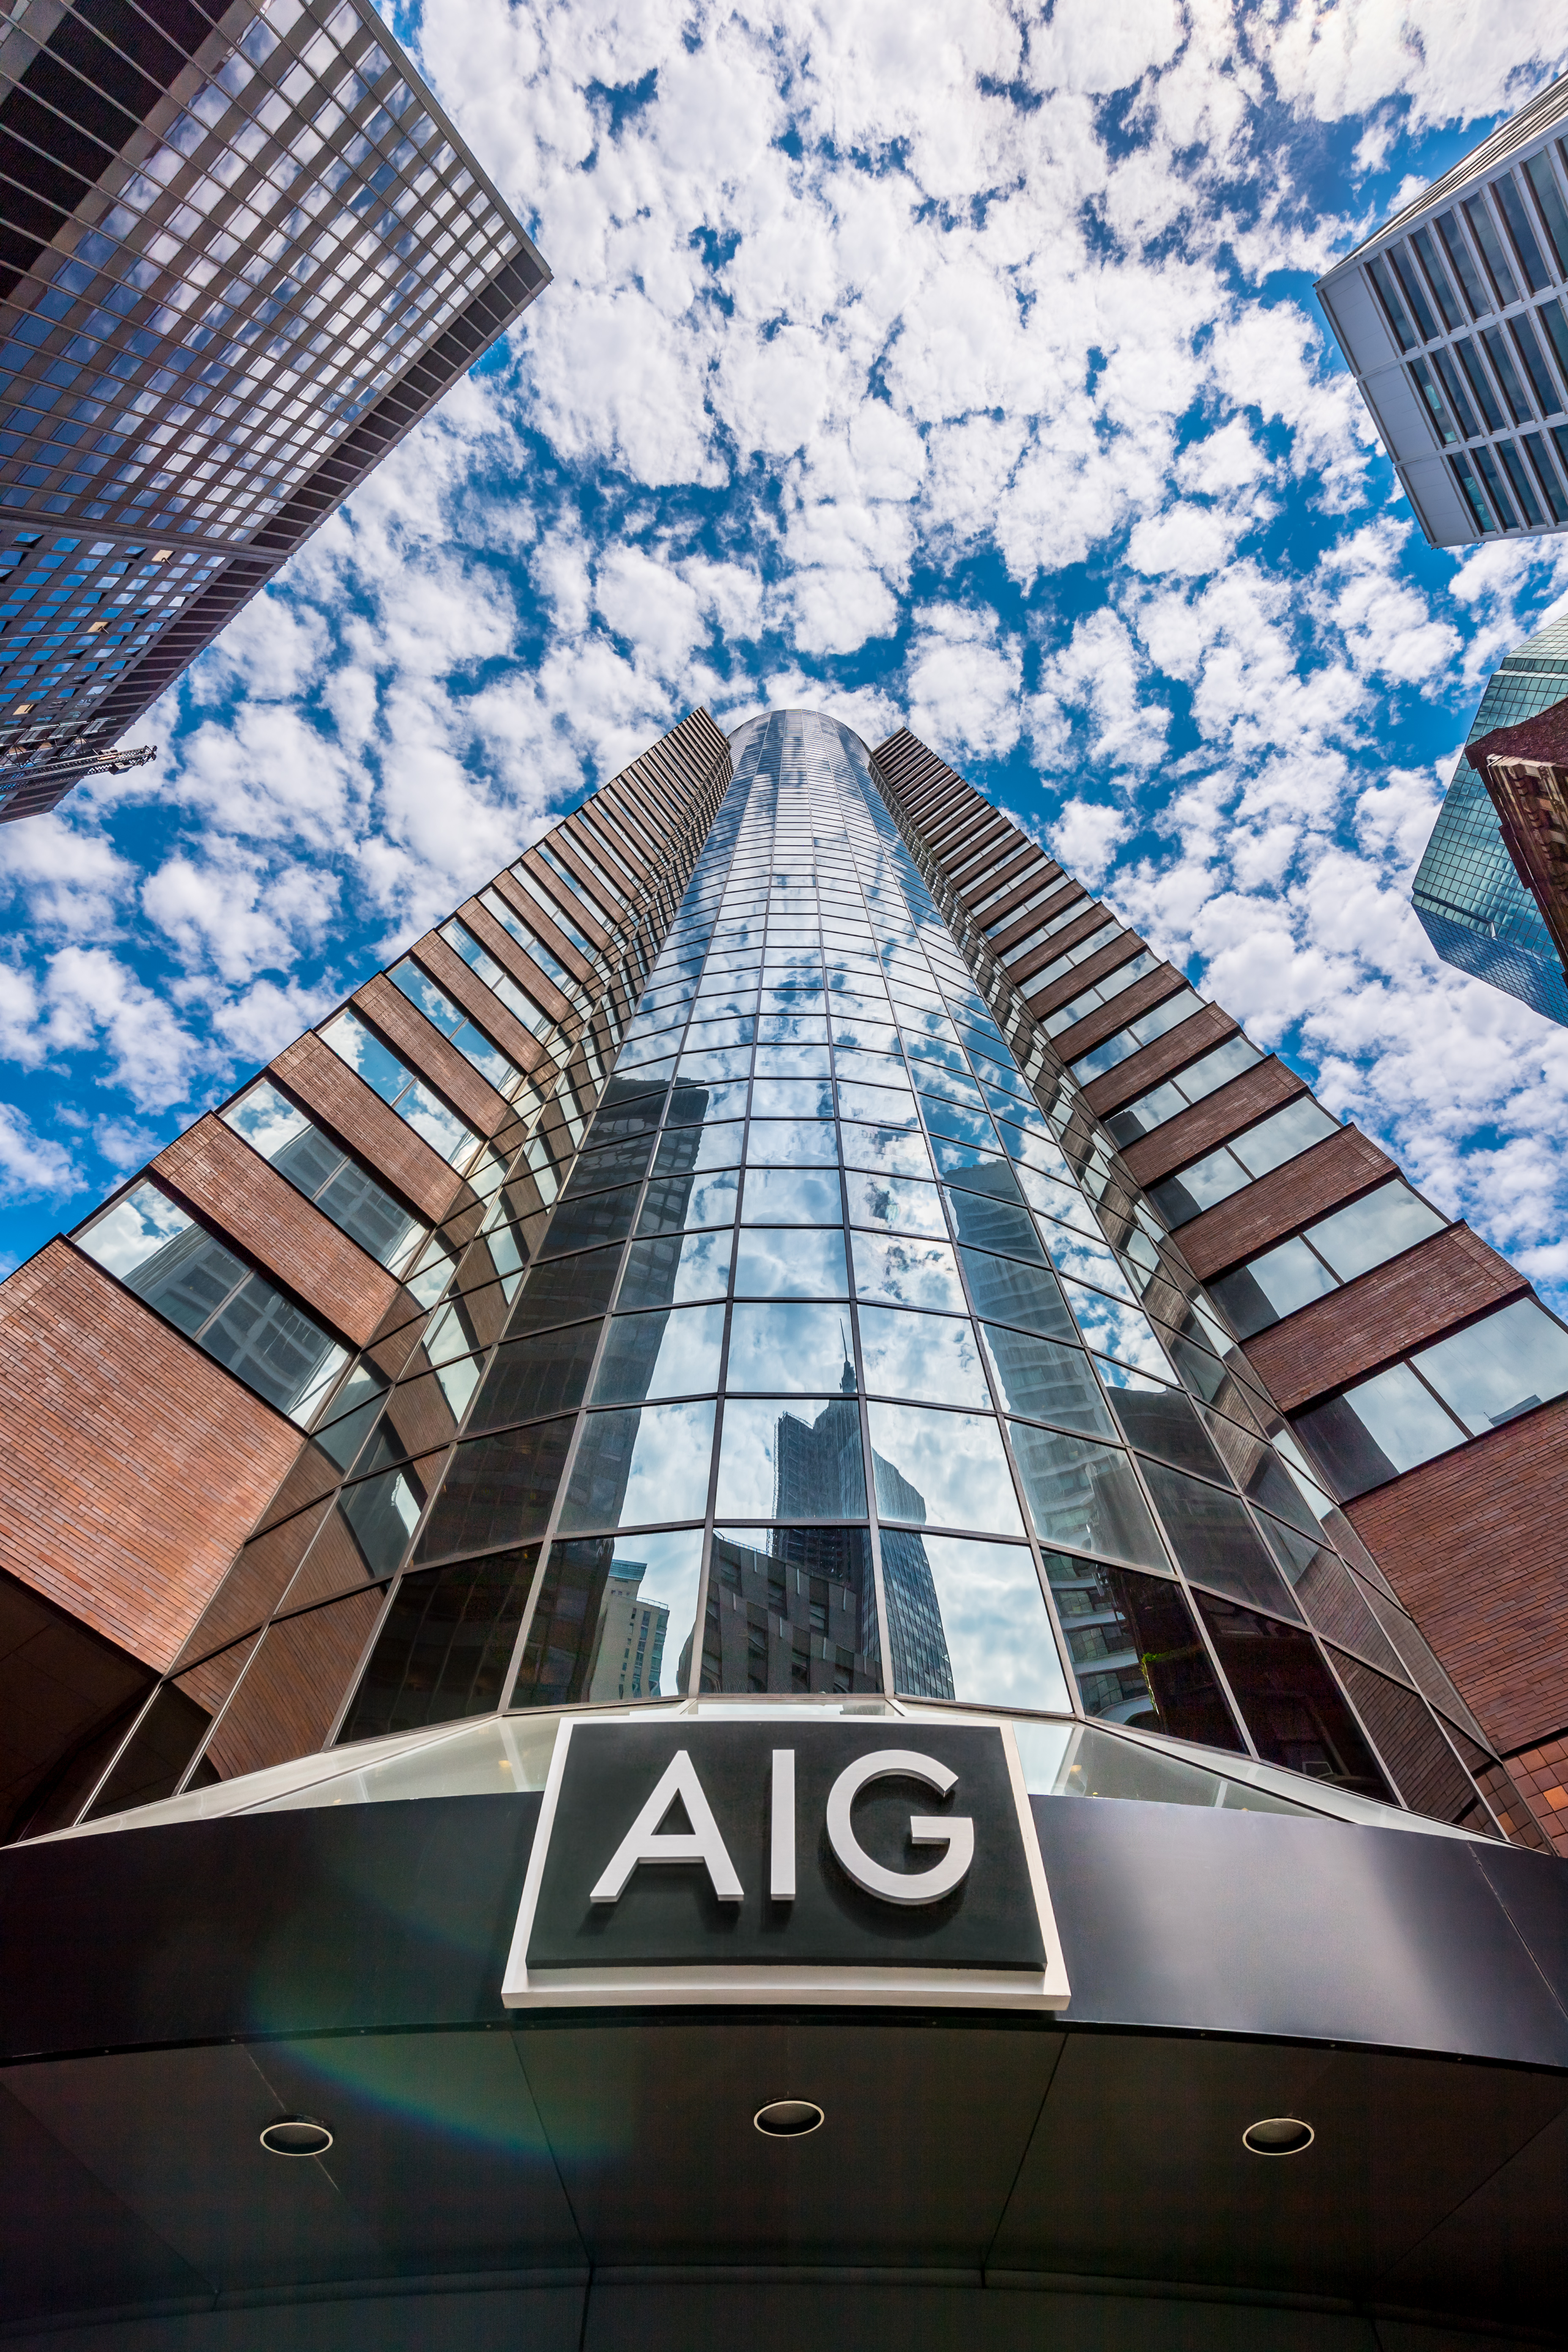 aig american international group American international group, inc (aig) is a us insurer that offers a wide range of insurance products and services to commercial, institutional and individual customers in 90 countries through an extensive worldwide p&c and life insurance n.